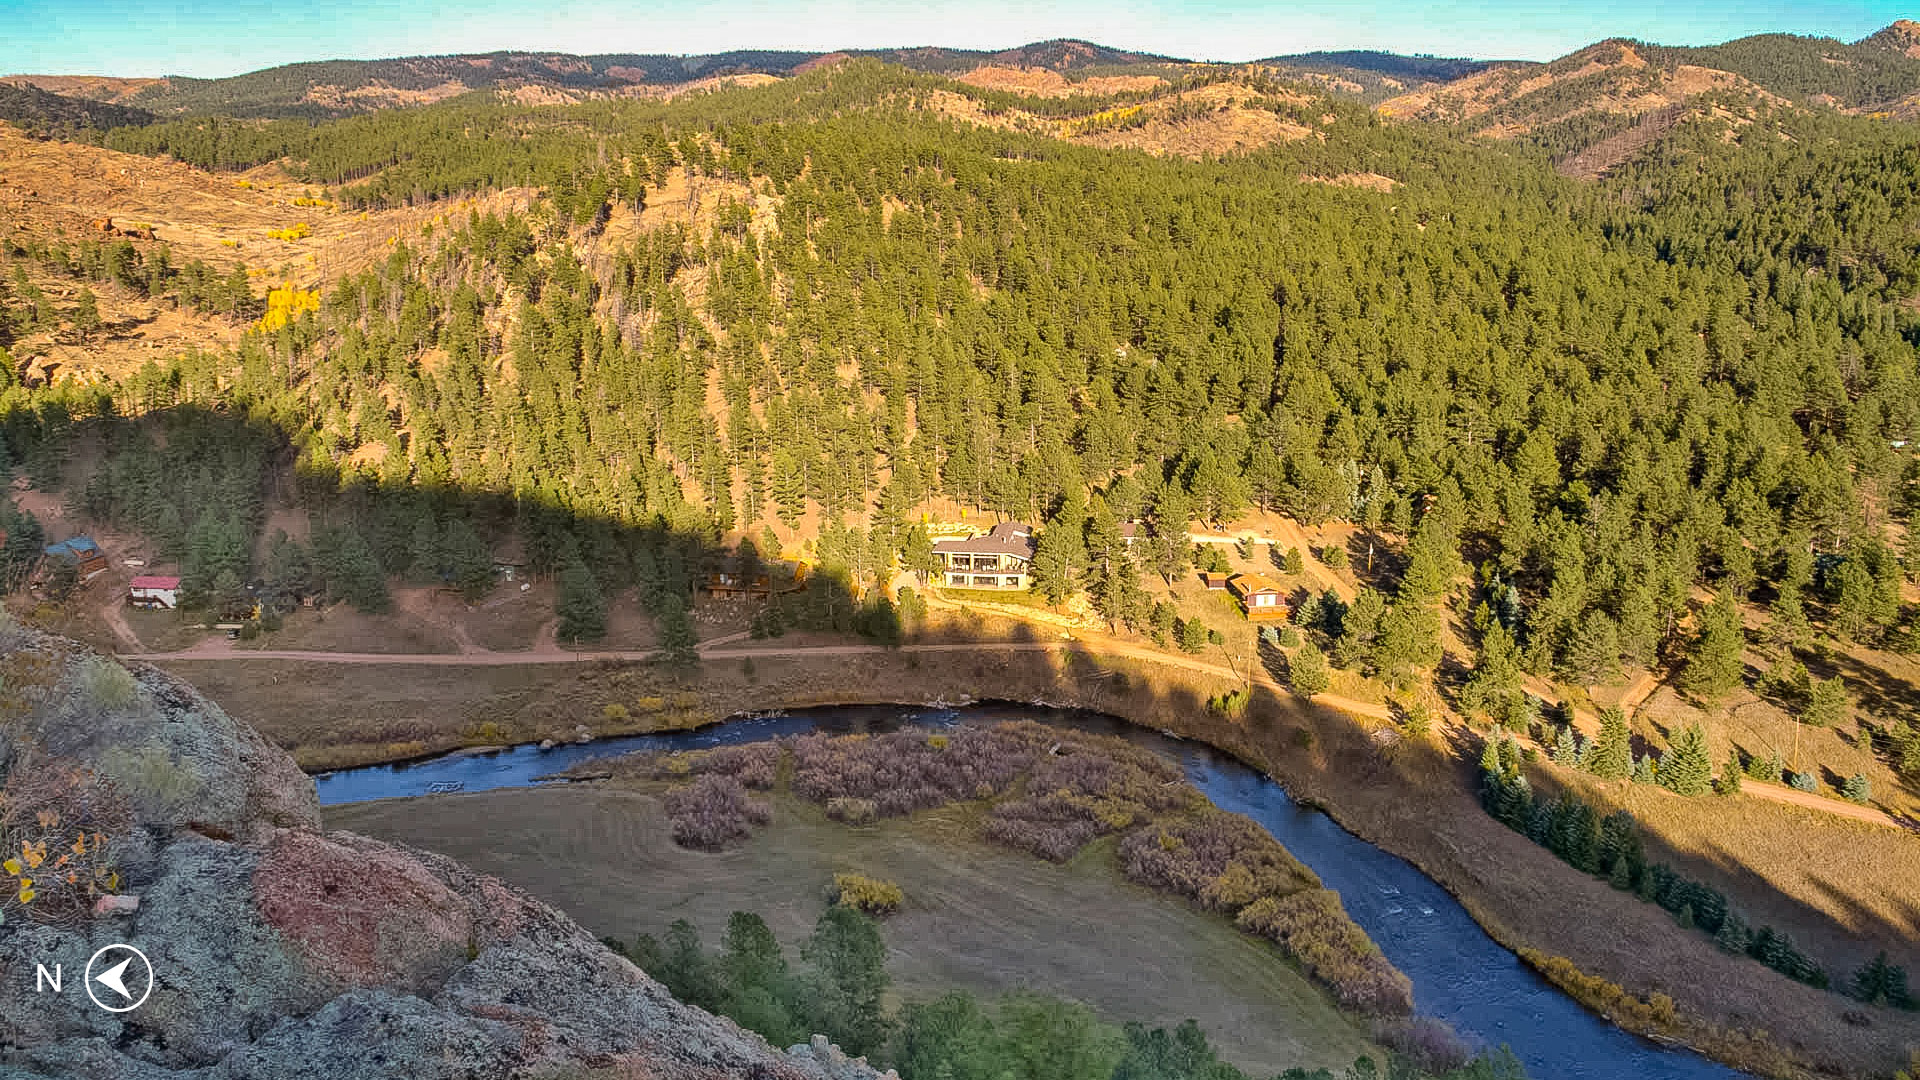 Aerial view of the home at 940 East Platte Road located in the gated community of Sportsmen's Paradise in Lake George, CO. Photo taken from Etch A Sketch Rock across the South Platte River along the trail of the same name.